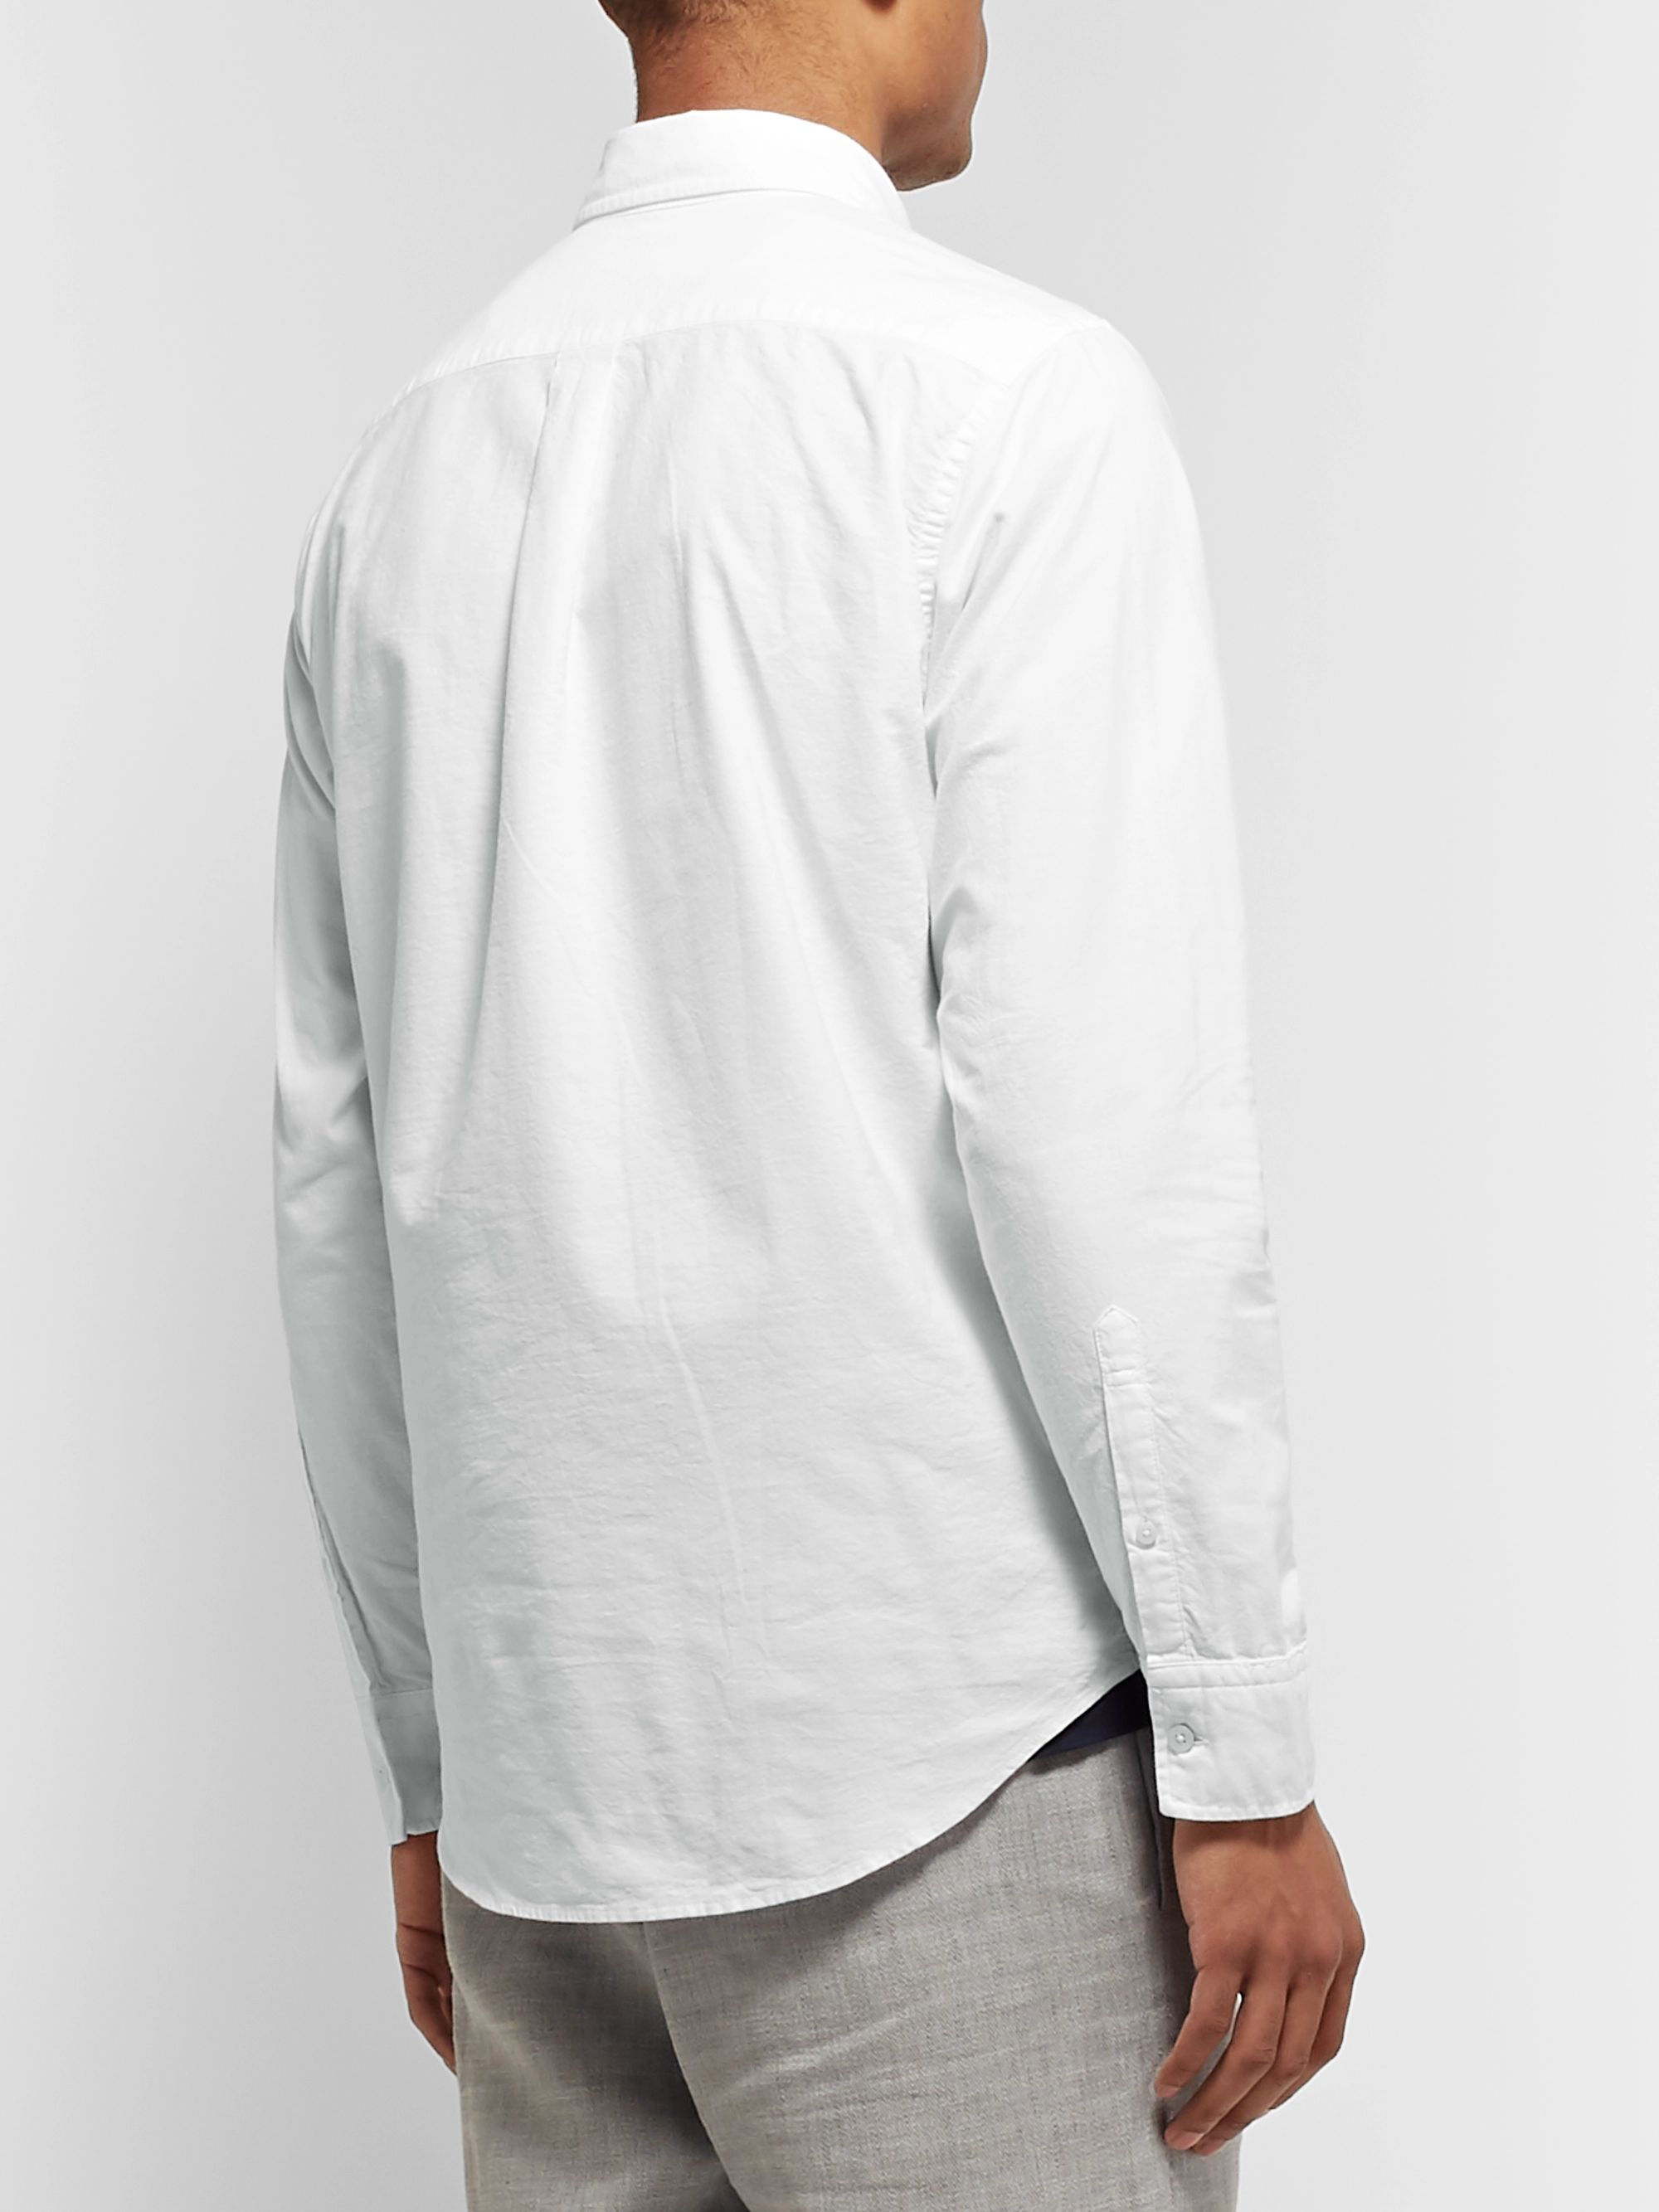 White Levon Button-down Collar Cotton Oxford Shirt | Nn07